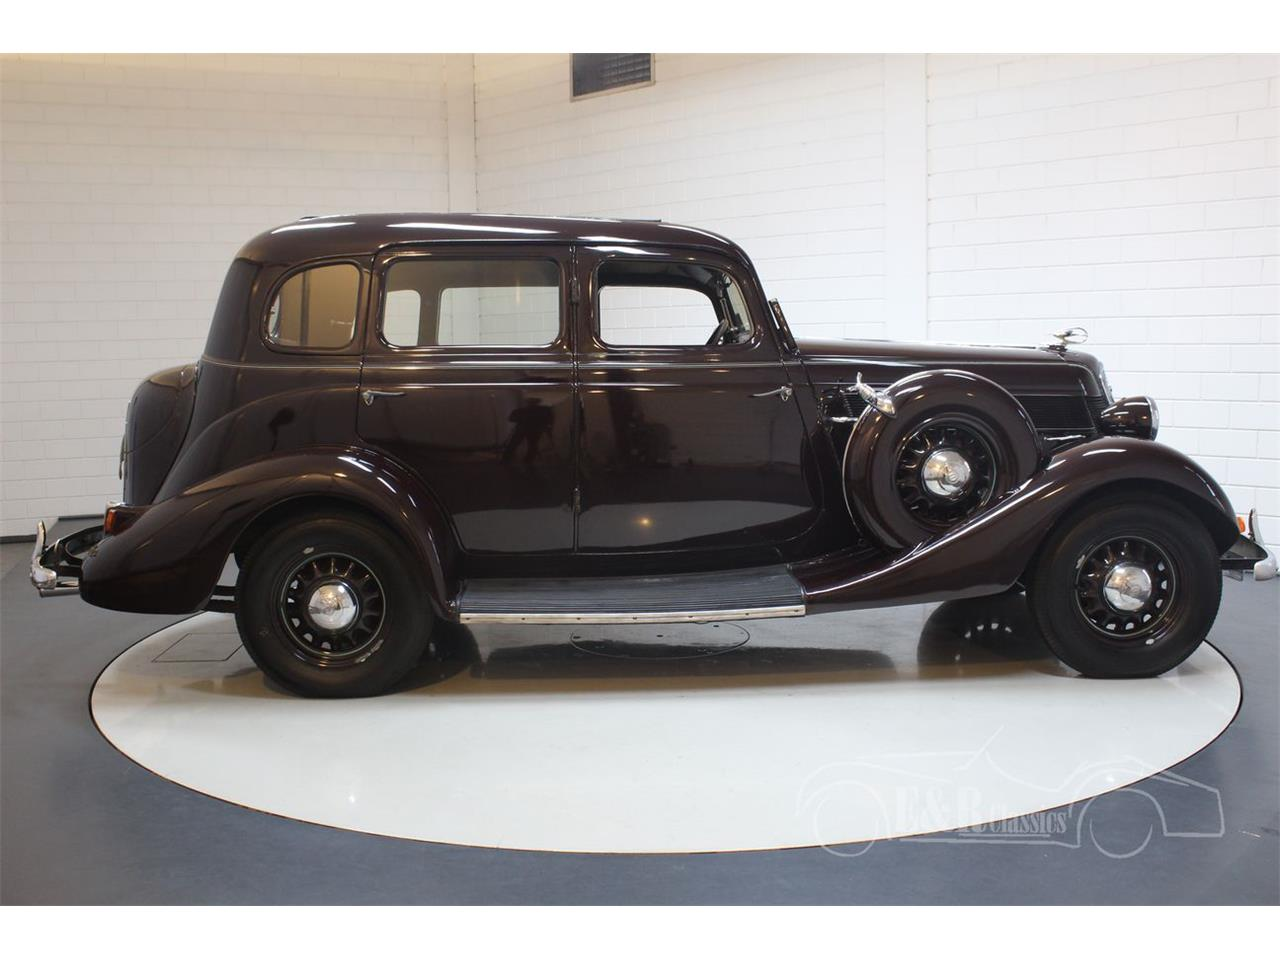 Large Picture of Classic '35 Dictator located in Waalwijk noord brabant - $33,800.00 - QJ2R